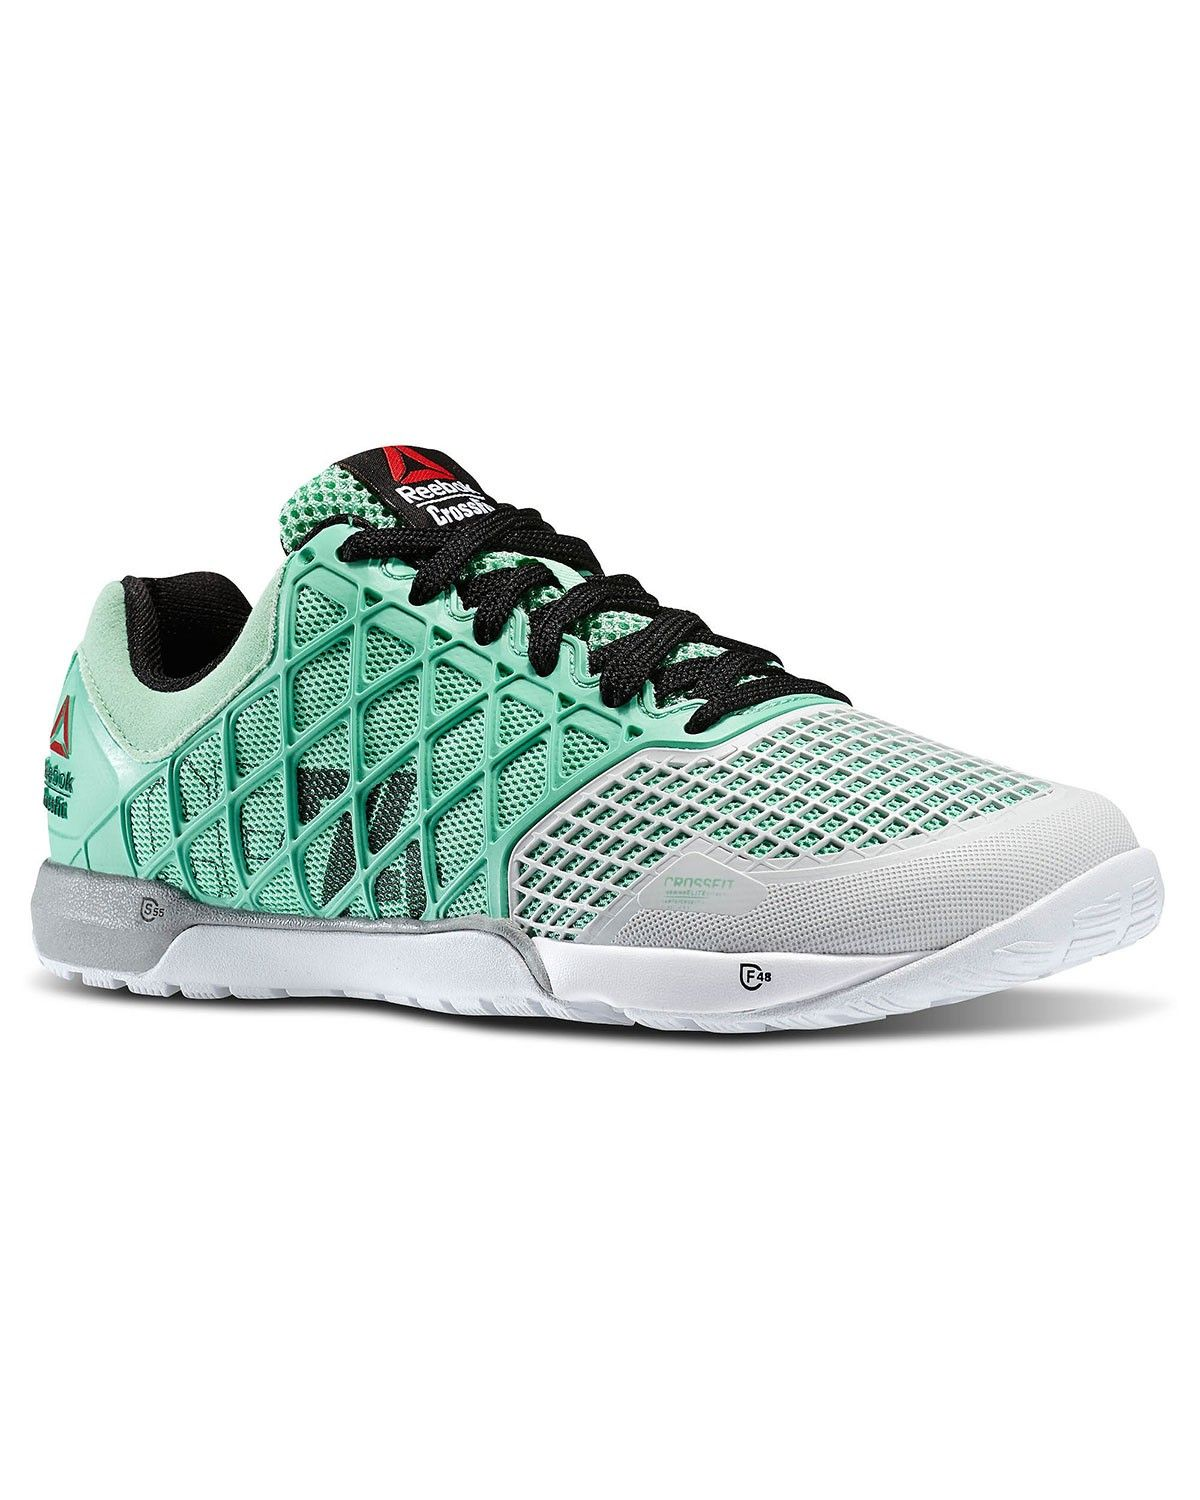 20c348713d9 Womens Reebok CrossFit Nano 4.0 - Performance